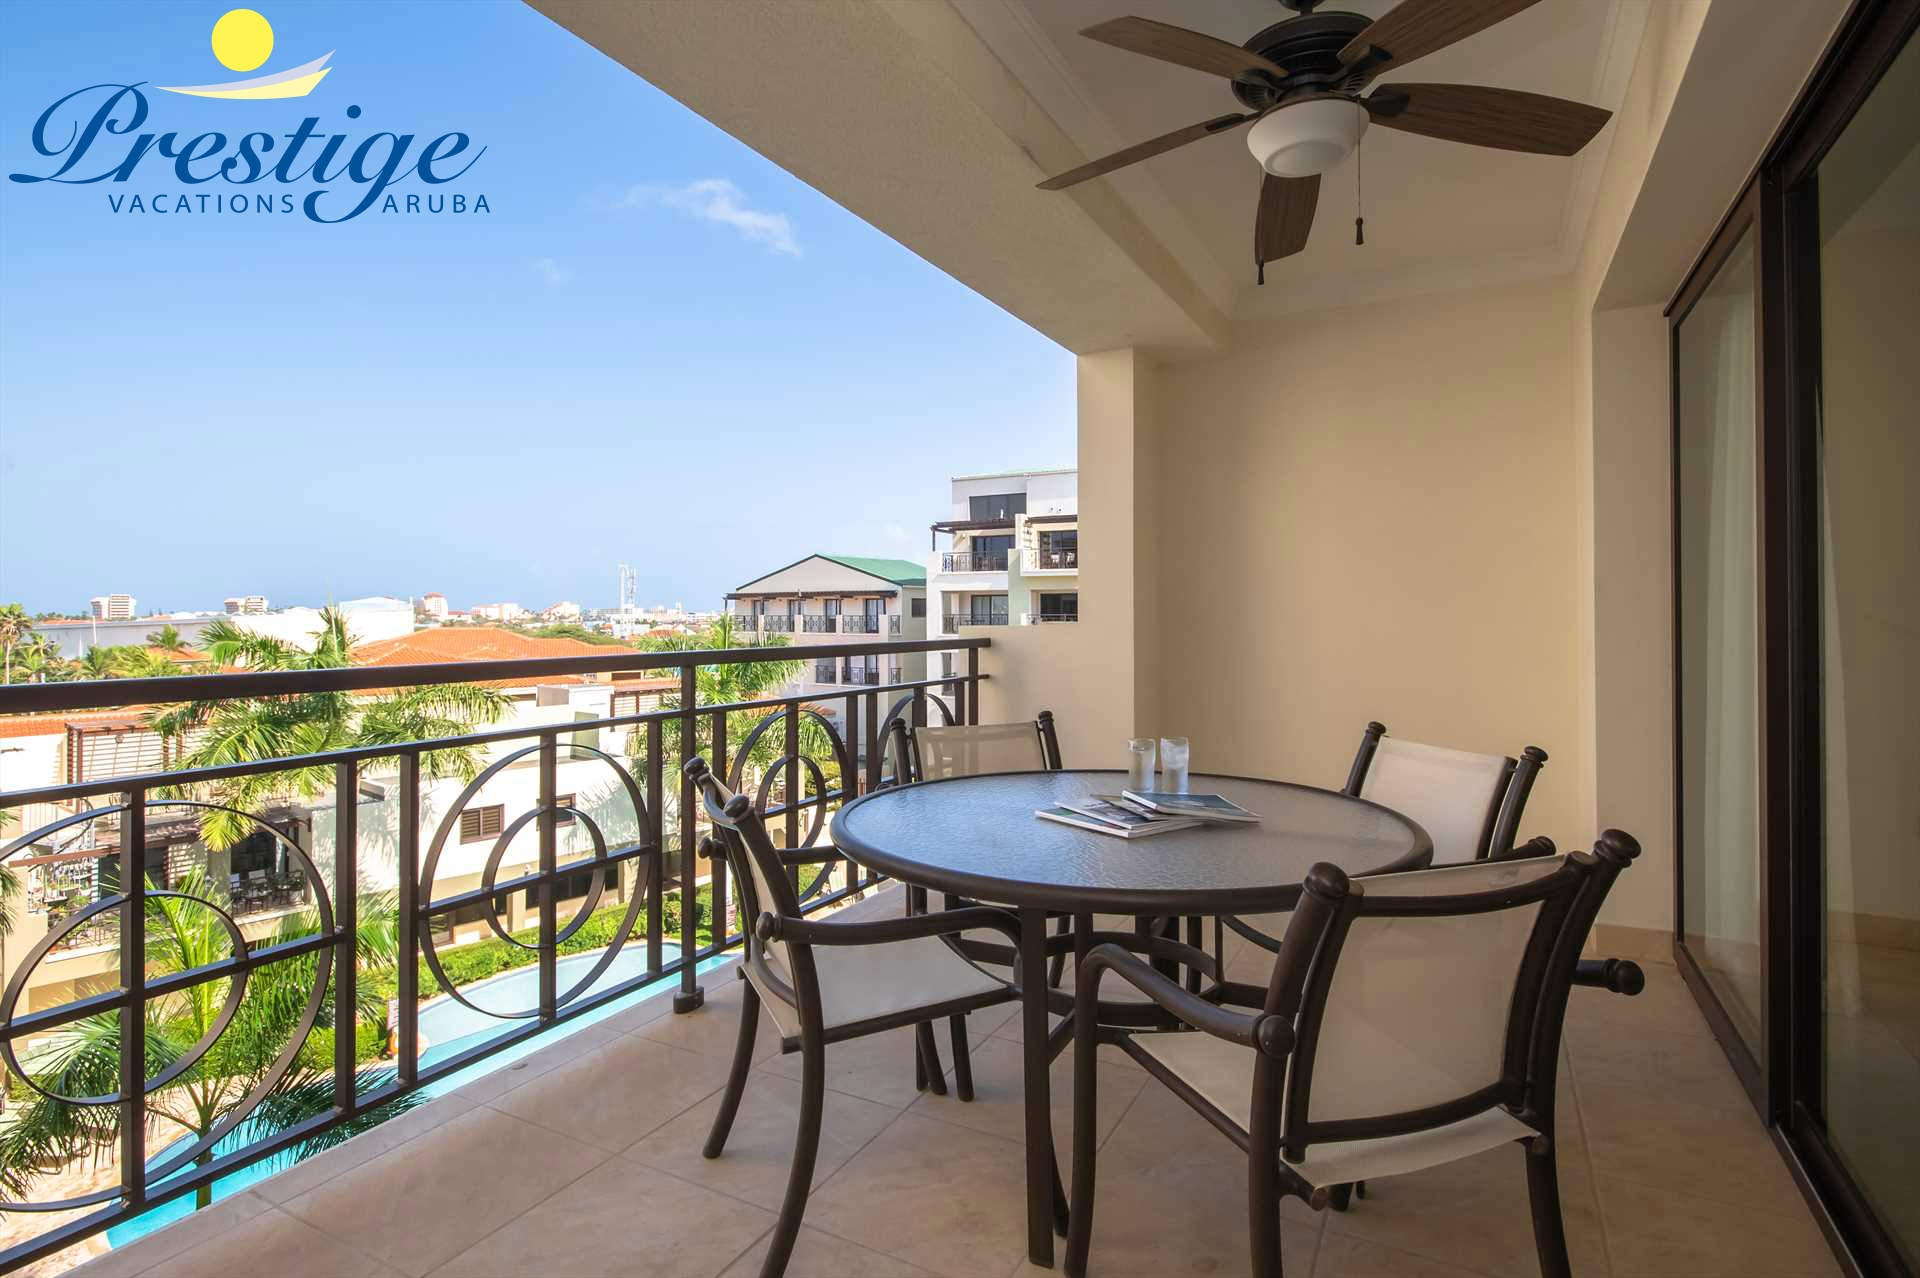 The balcony makes for the perfect setting to enjoy Aruba's weather